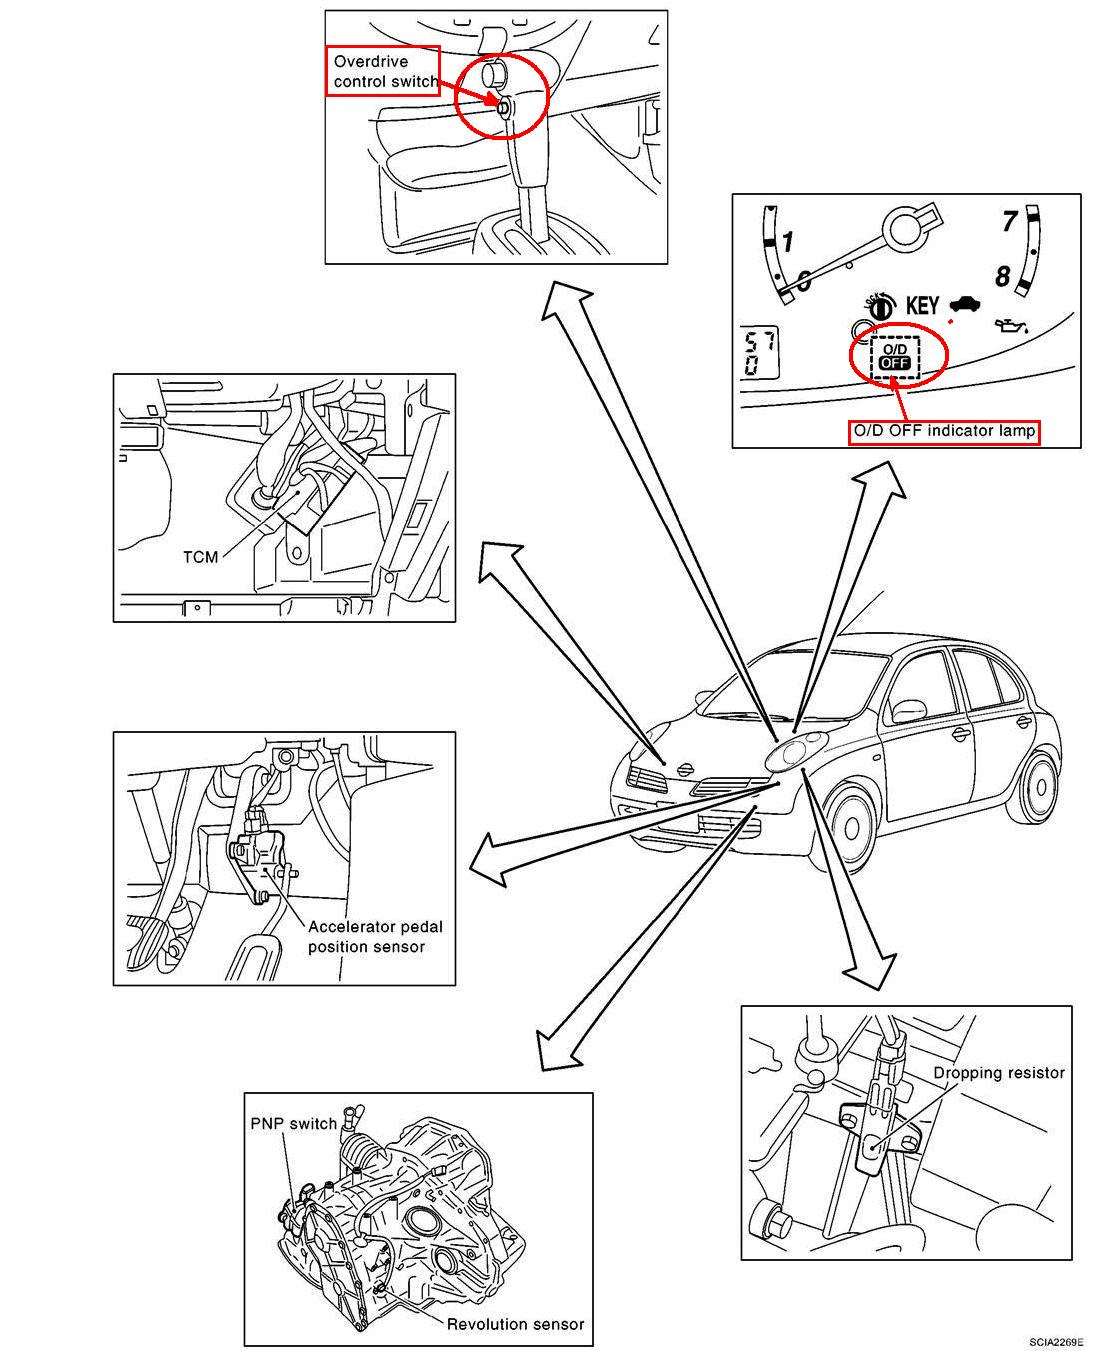 fuse box nissan march k11 nissan march k12 wiring diagram